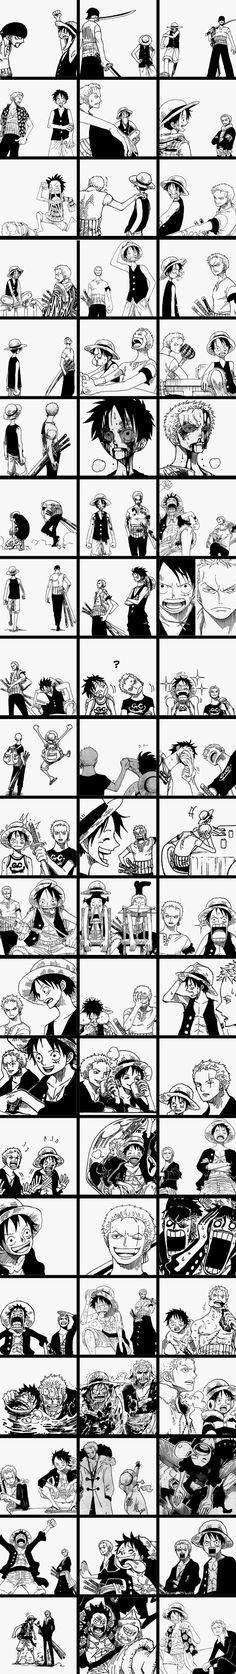 Zoro and Luffy, the original two :D